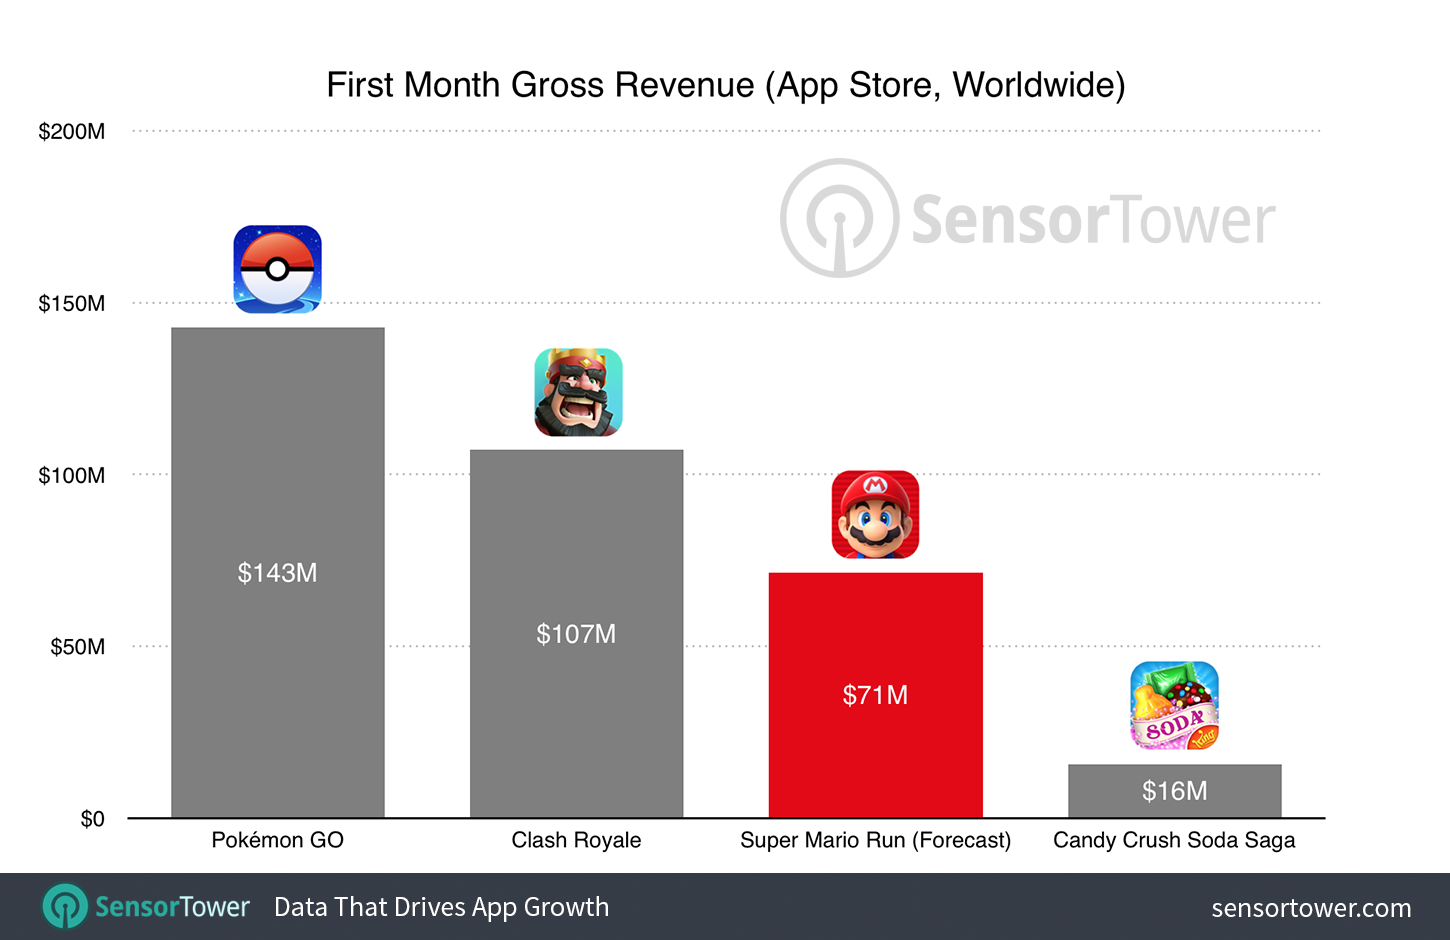 super-mario-run-revenue-forecast